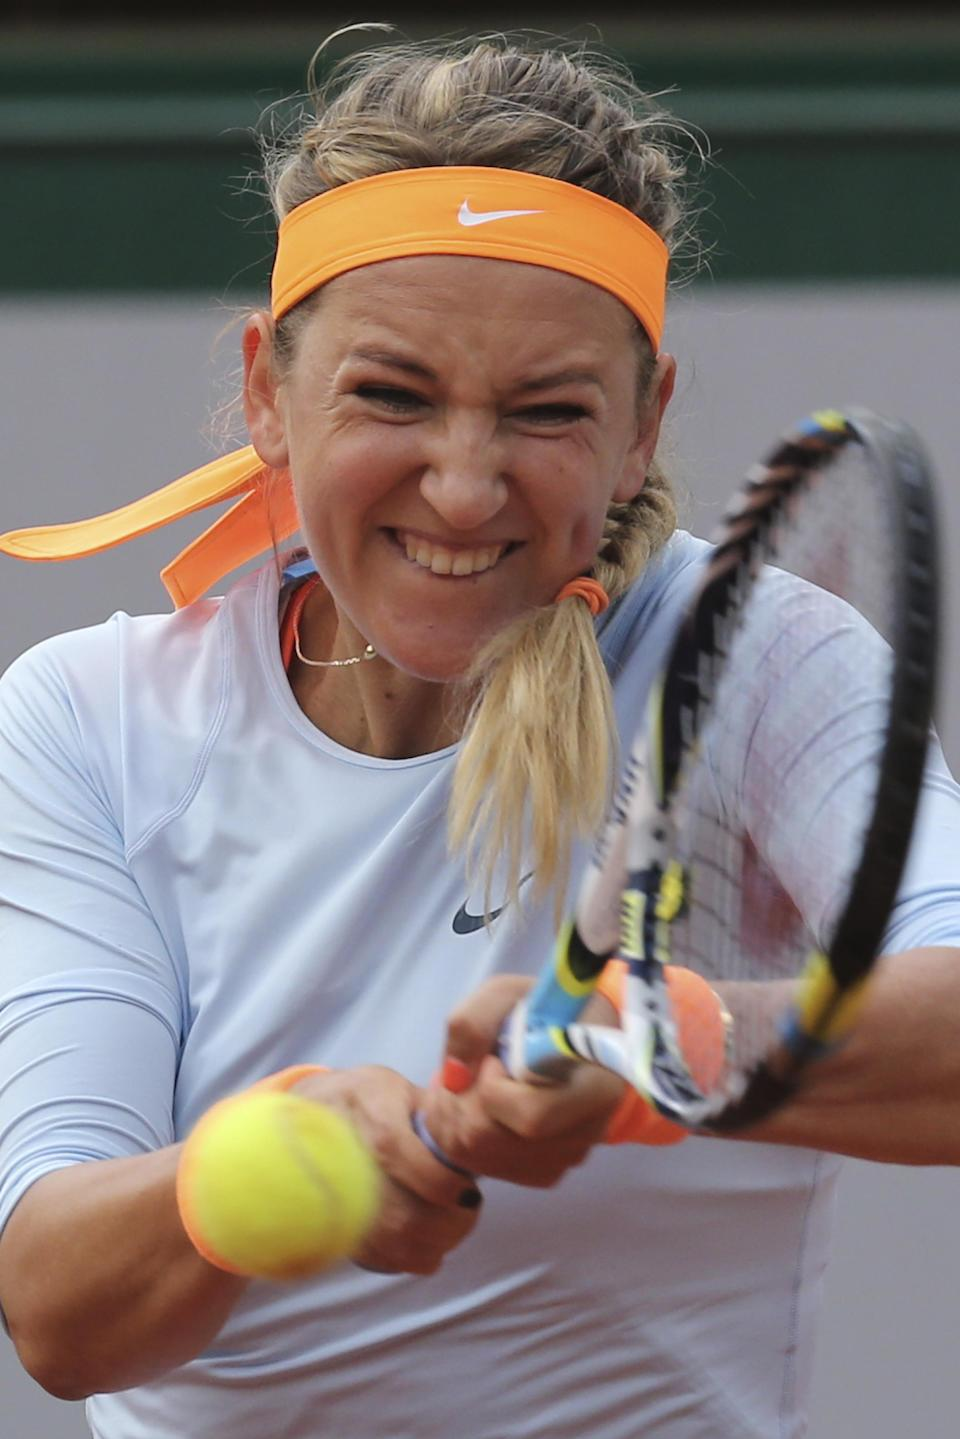 Victoria Azarenka of Belarus returns against Italy's Francesca Schiavone in their fourth round match at the French Open tennis tournament, at Roland Garros stadium in Paris, Monday June 3, 2013. Azarenka won in two sets 6-3, 6-0. (AP Photo/Michel Euler)